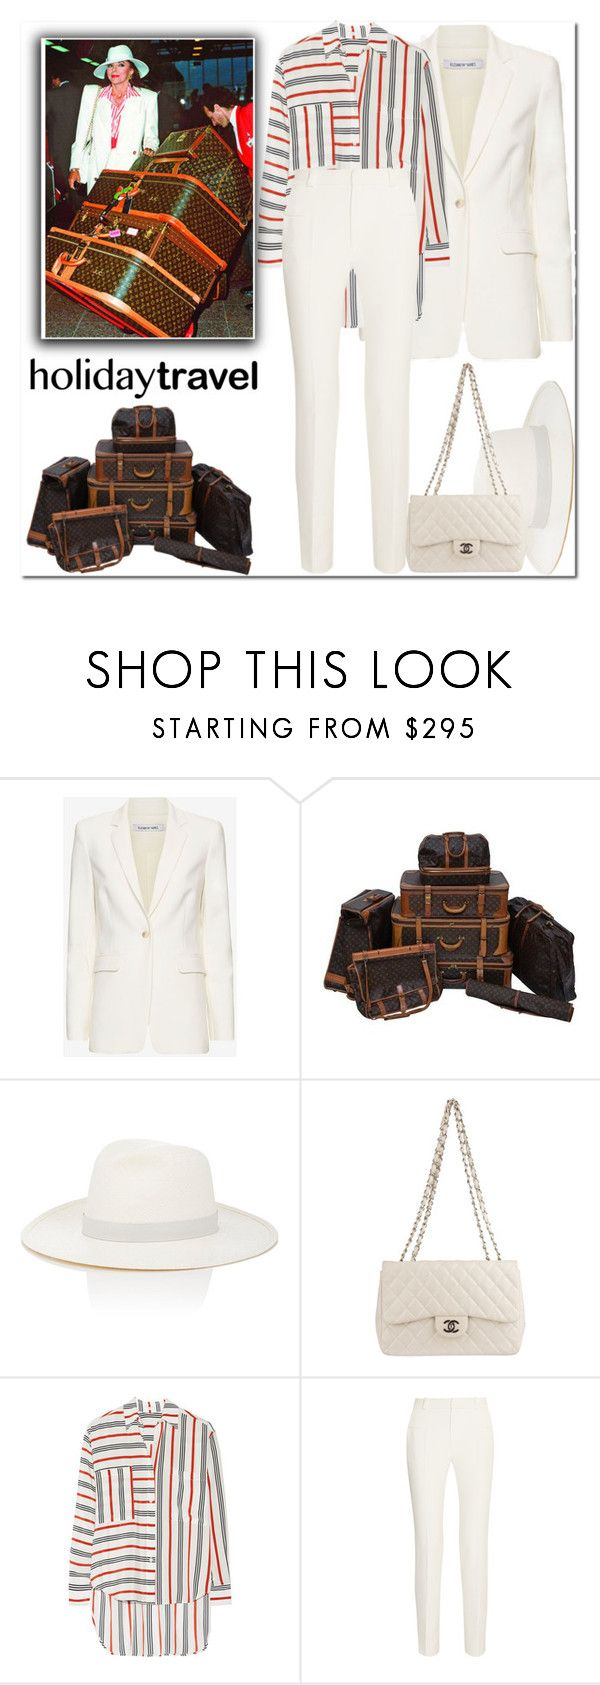 """When you are Dynasty - Joan Collins coming through"" by mood-chic ❤ liked on Polyvore featuring Elizabeth and James, Louis Vuitton, Janessa Leone, Chanel, Tome, Roland Mouret and travelinstyle"